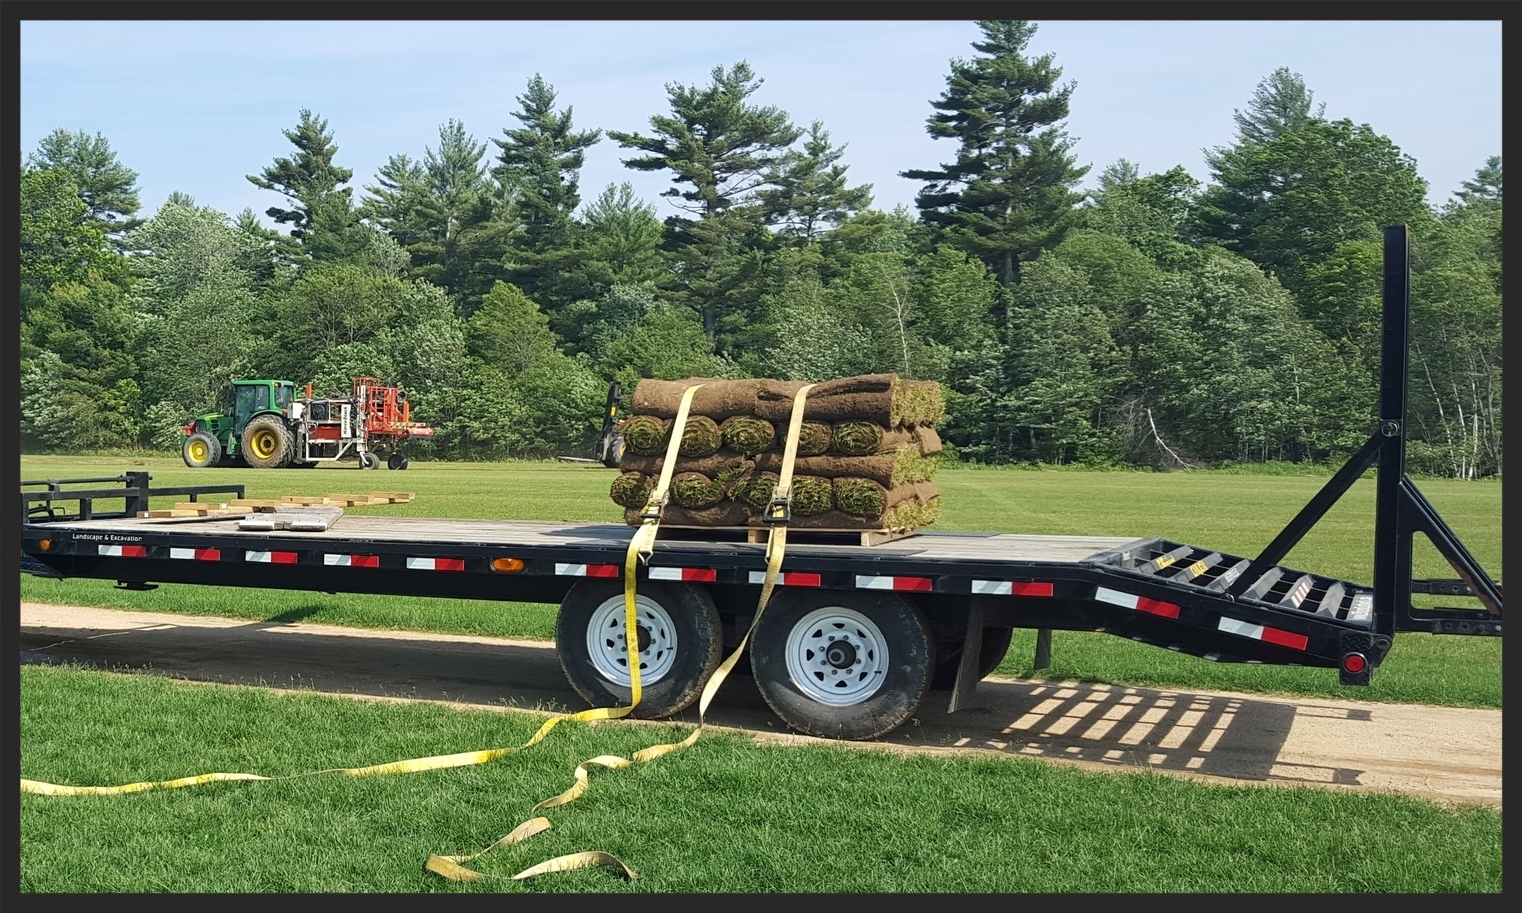 Sod from Field to Trailer